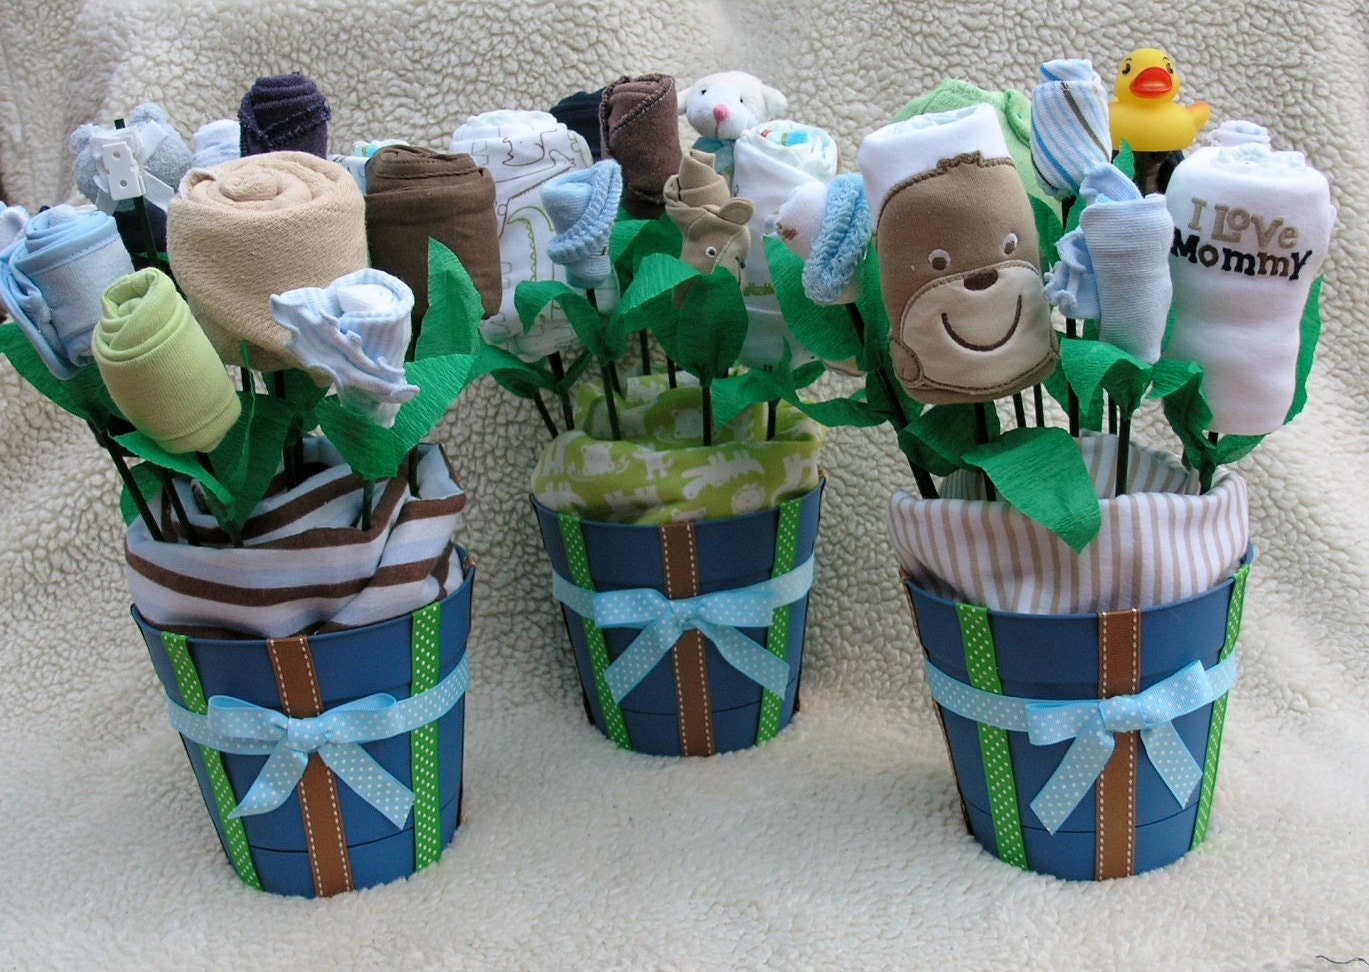 Duck baby shower on pinterest rubber duck baby boy for Baby shower centerpiece decoration